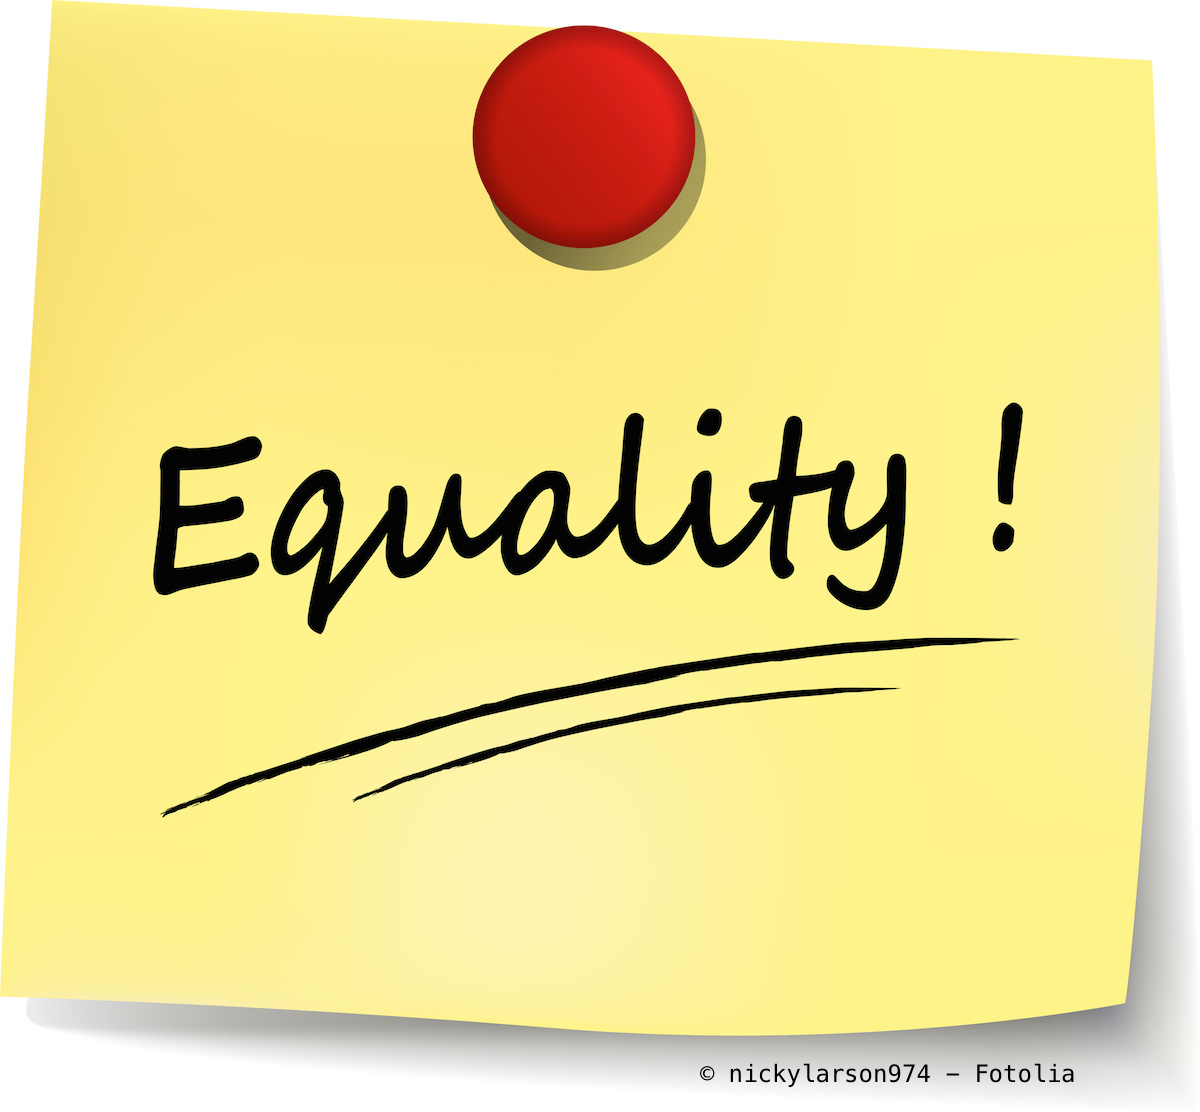 Fotolia_79727384.jpg (equality yellow note)